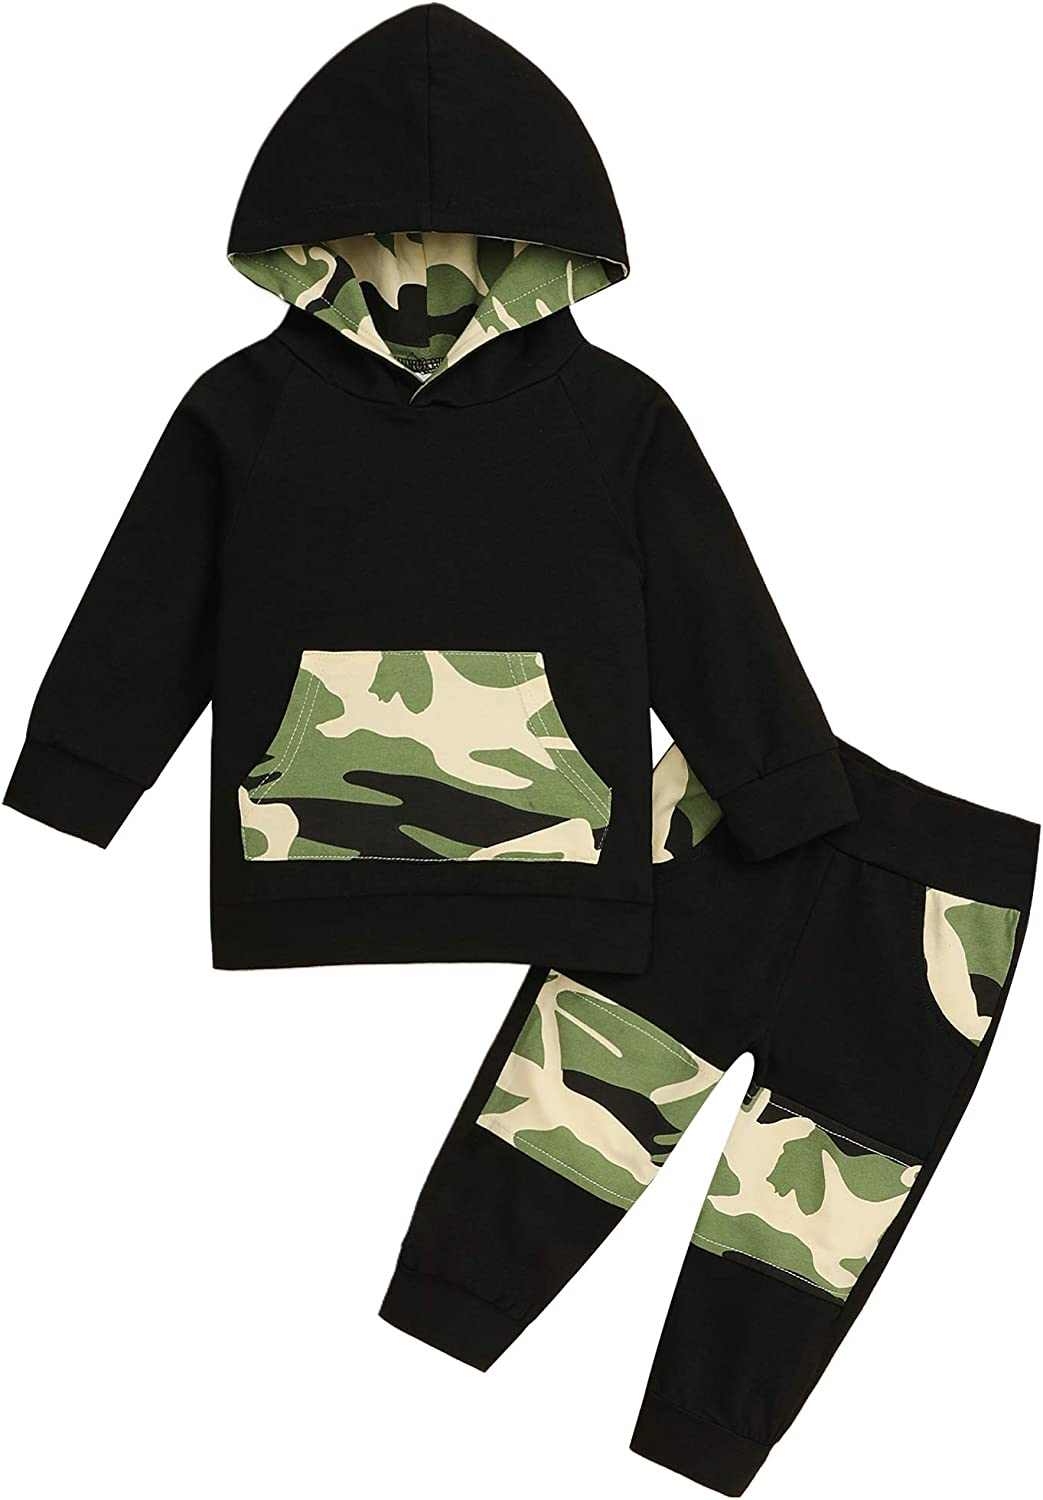 Toddler Baby Boy Clothes Infant Baby Boy Clothes Hoodie Camouflage Pant Outfit Set for Fall